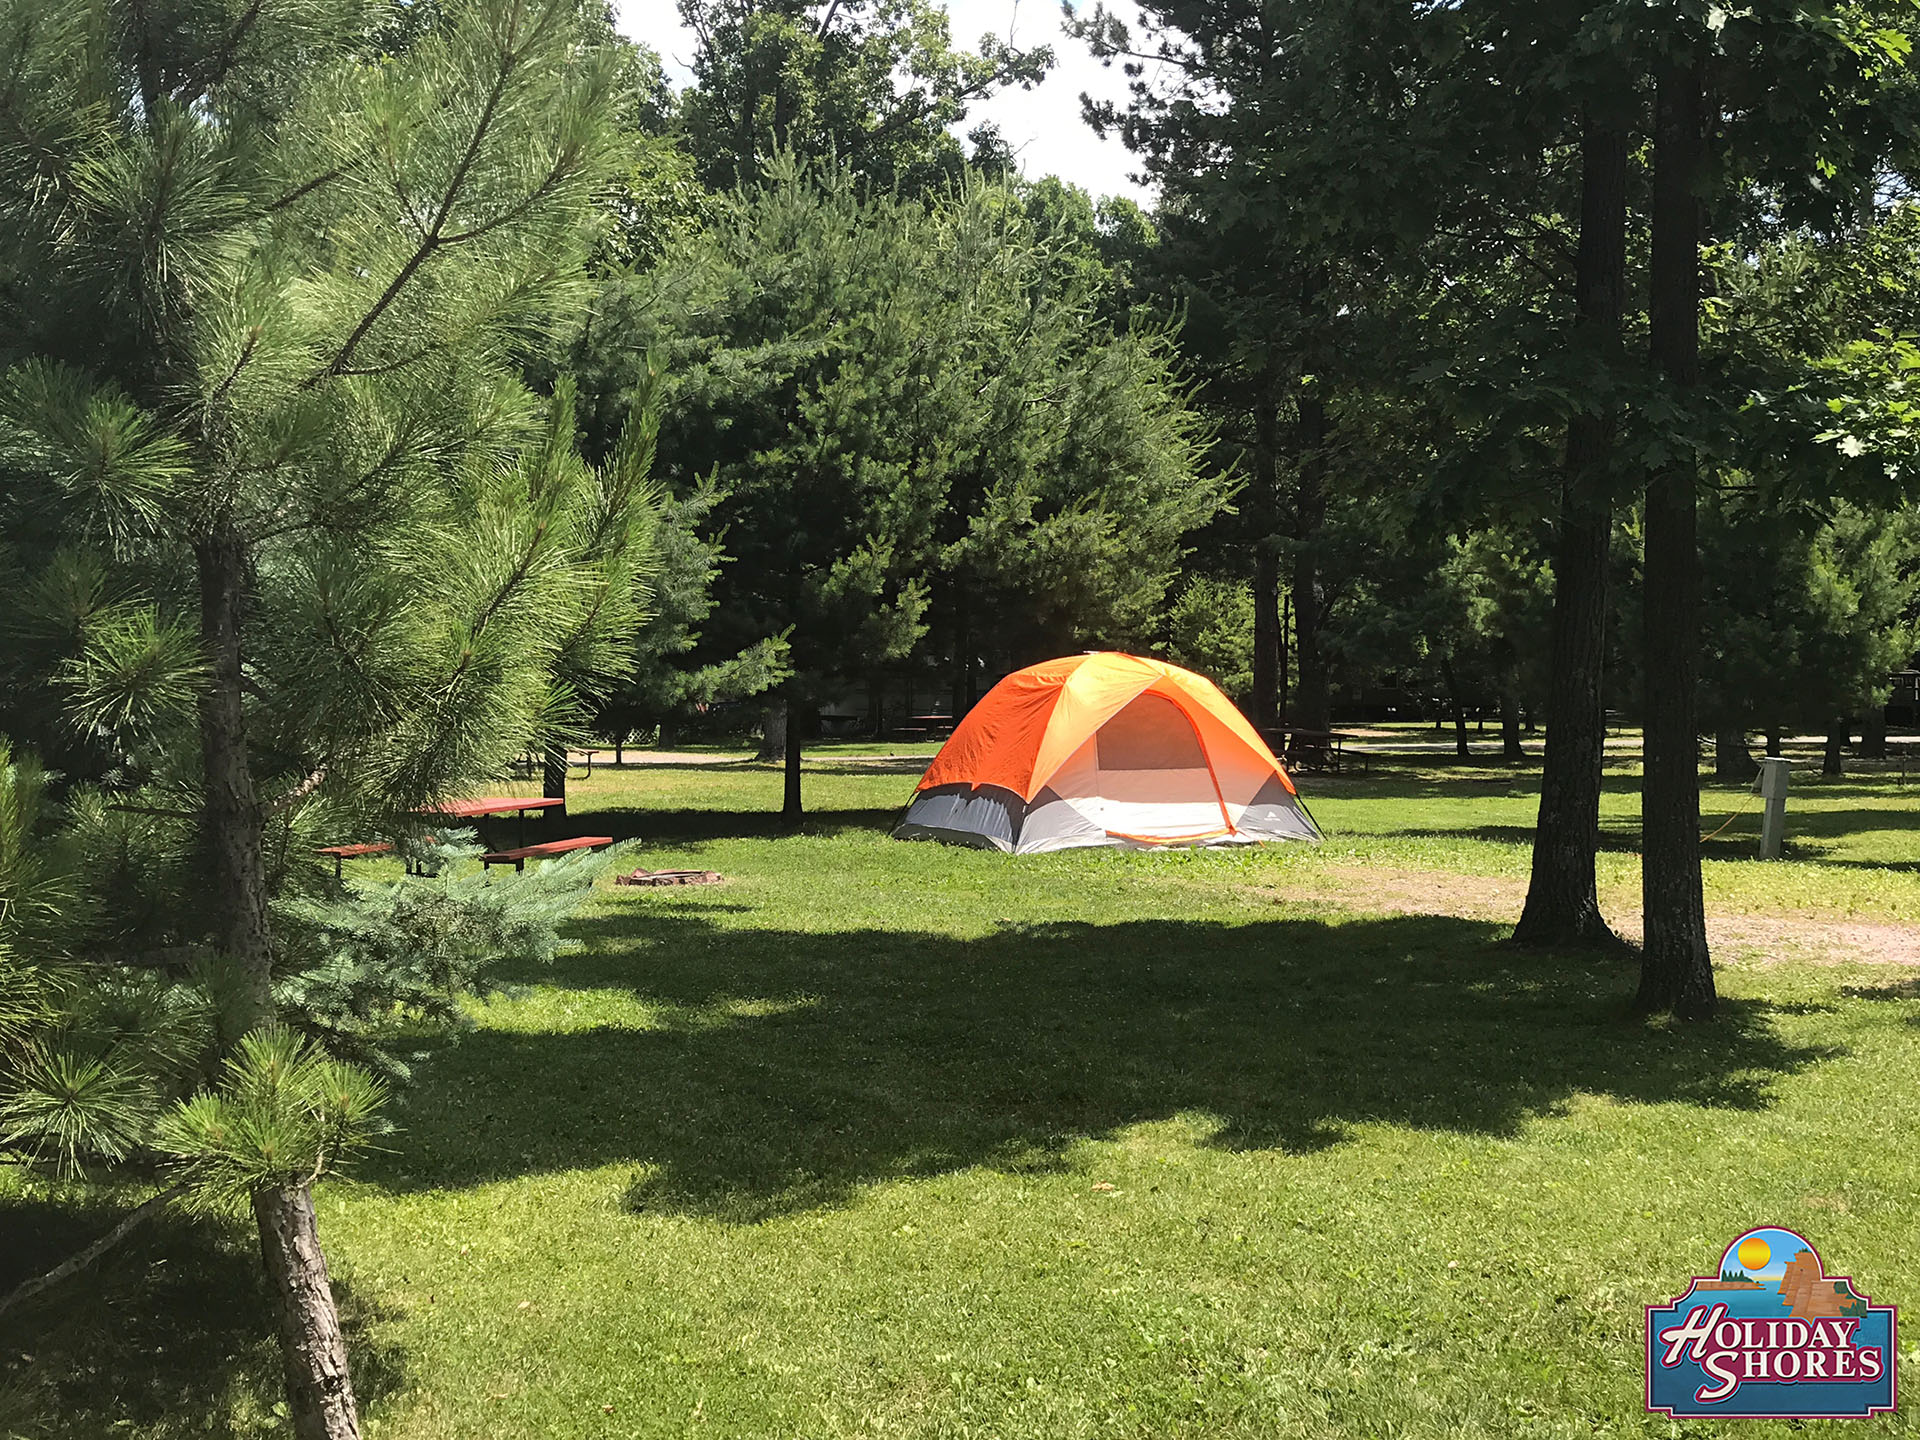 Holiday Shores Orange Tent Site